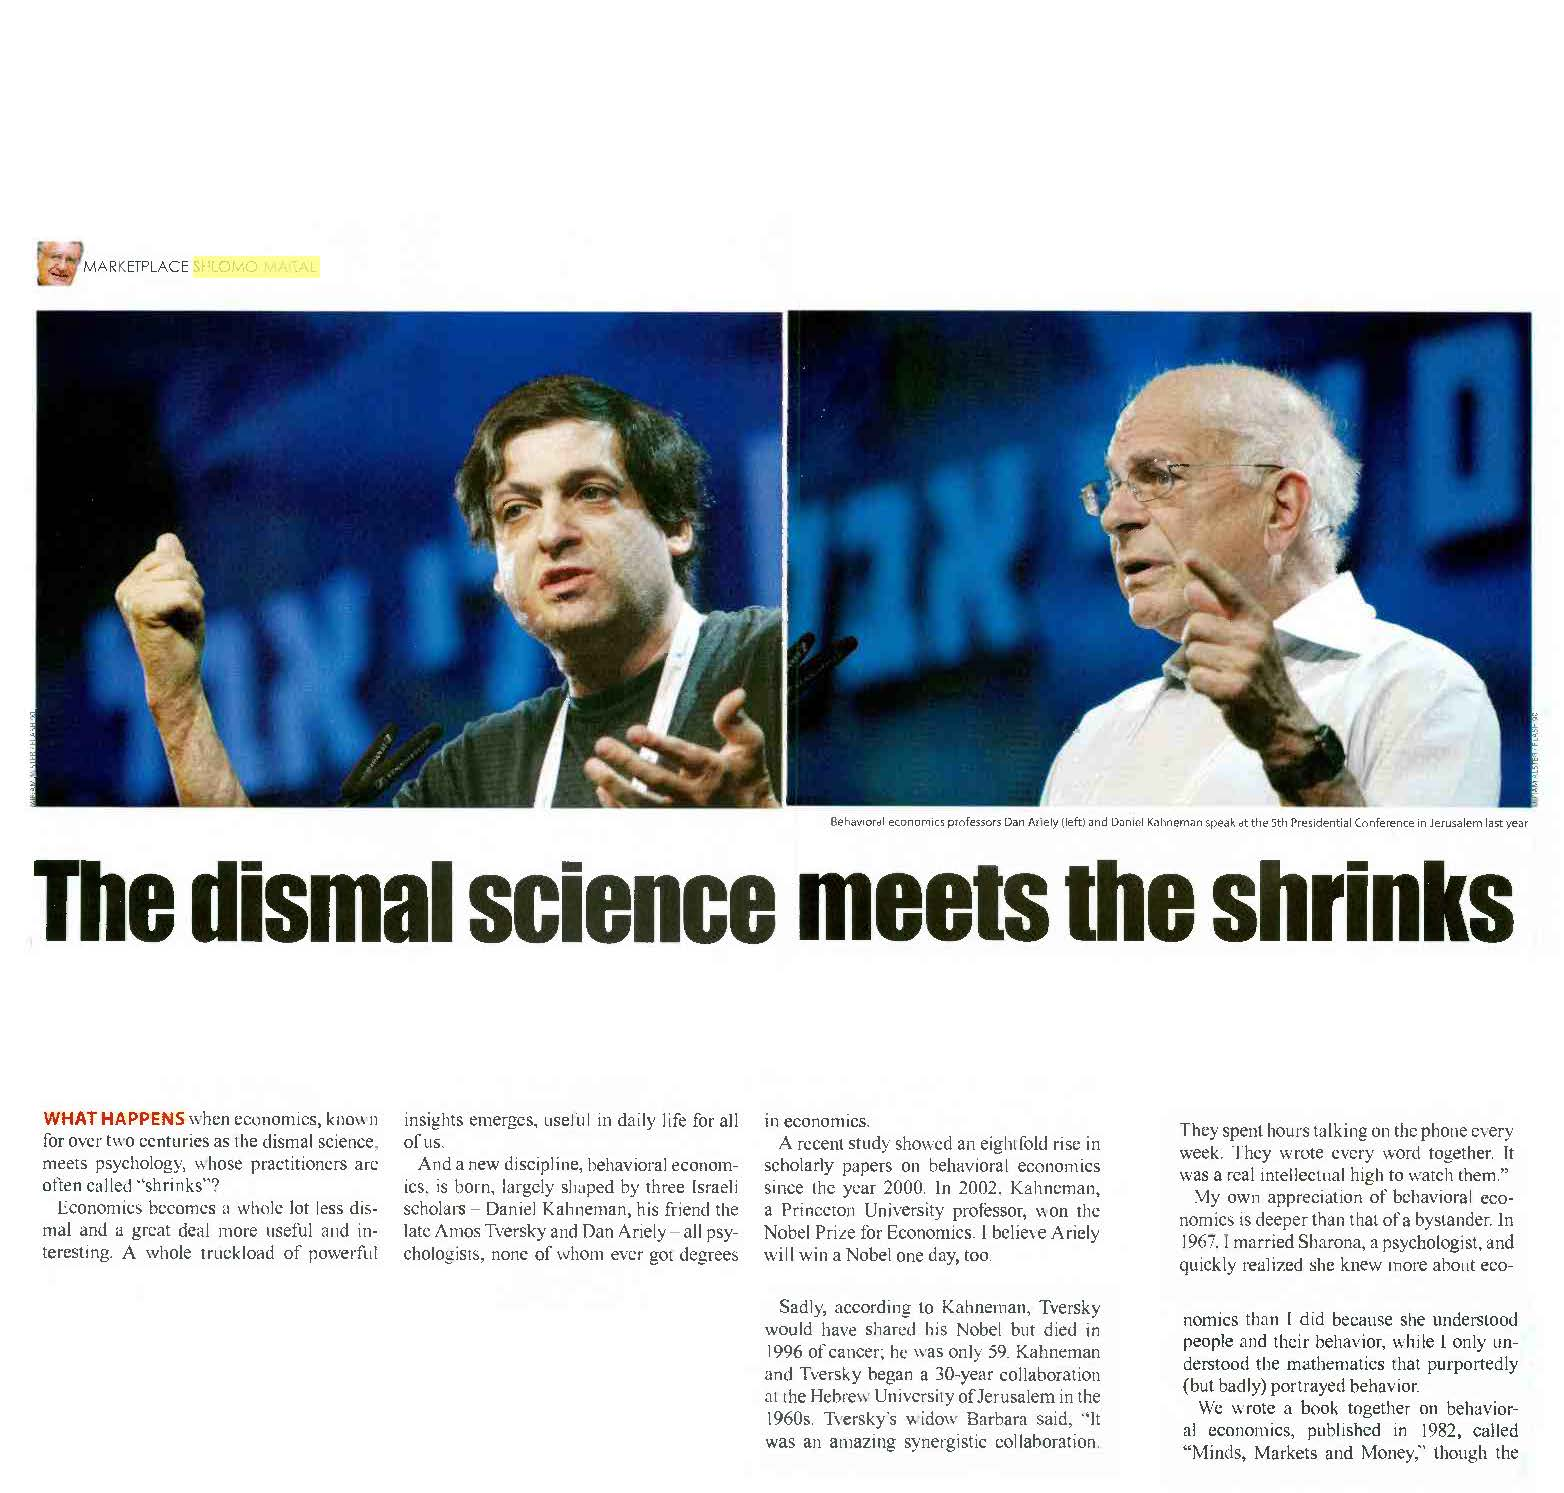 The dismal science meets the shrinks